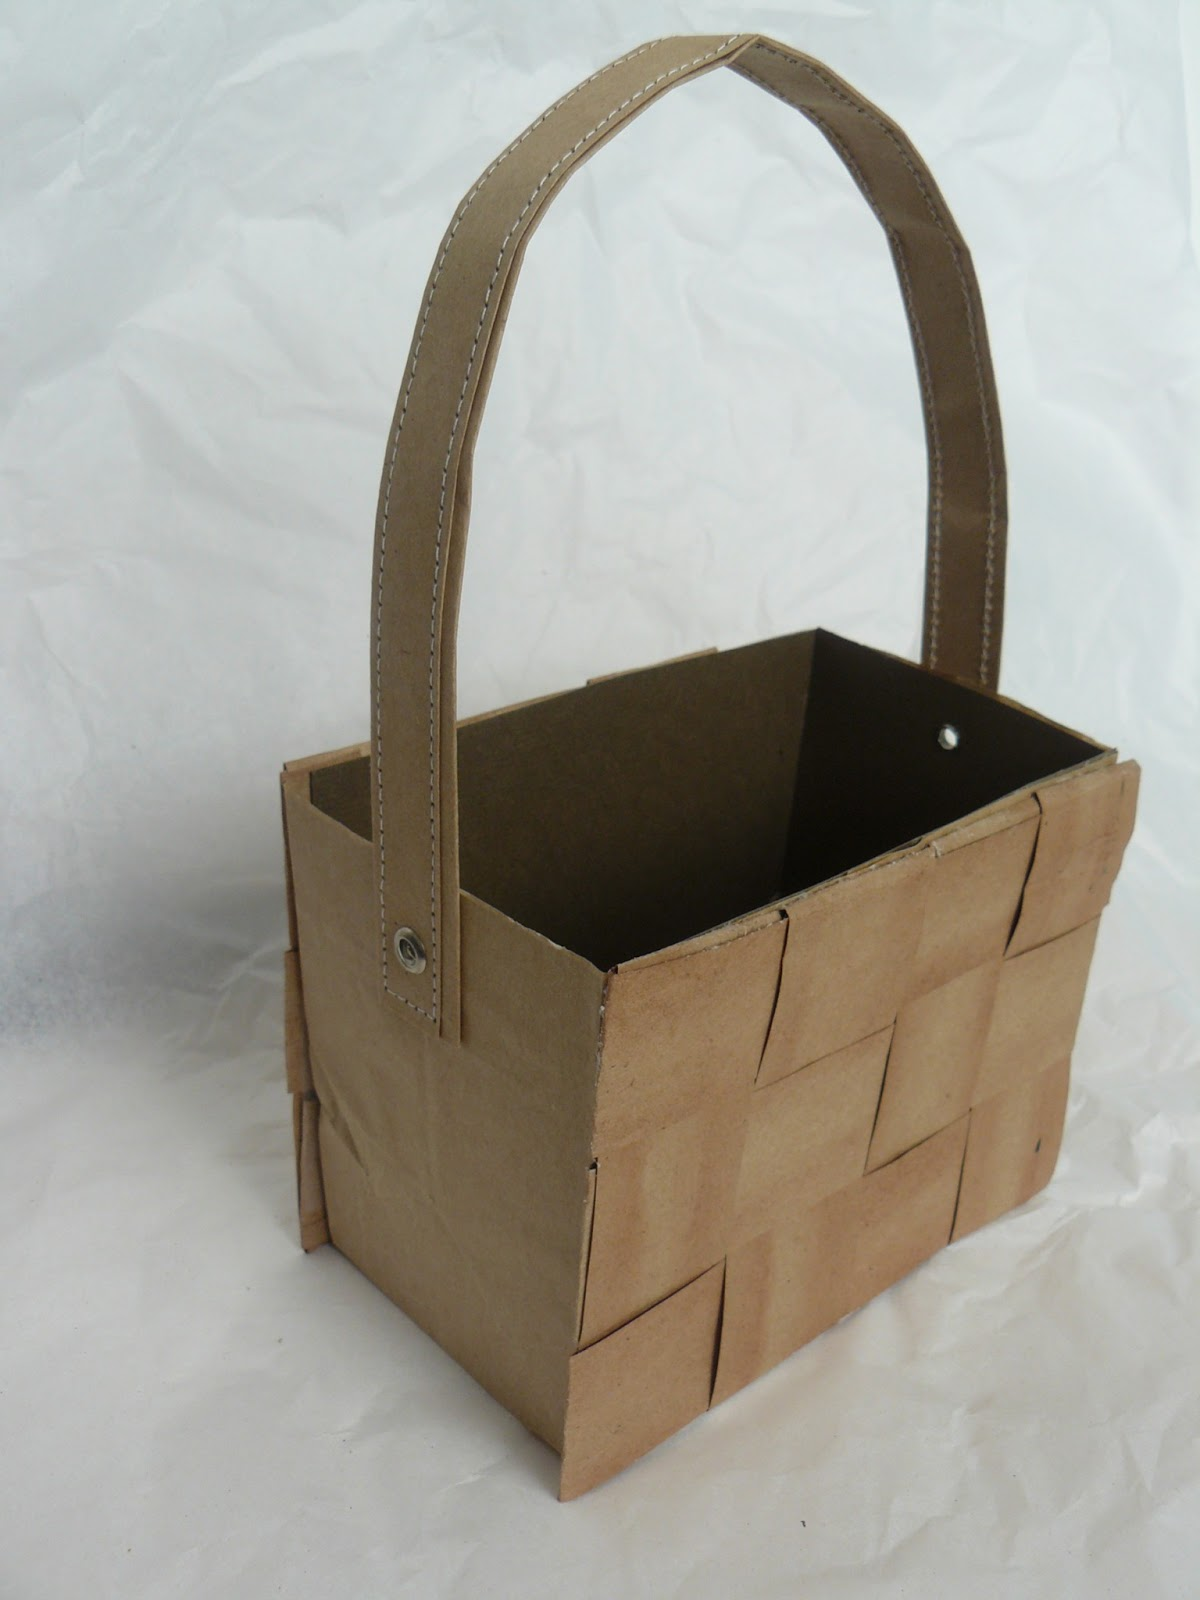 how to make small baskets with paper